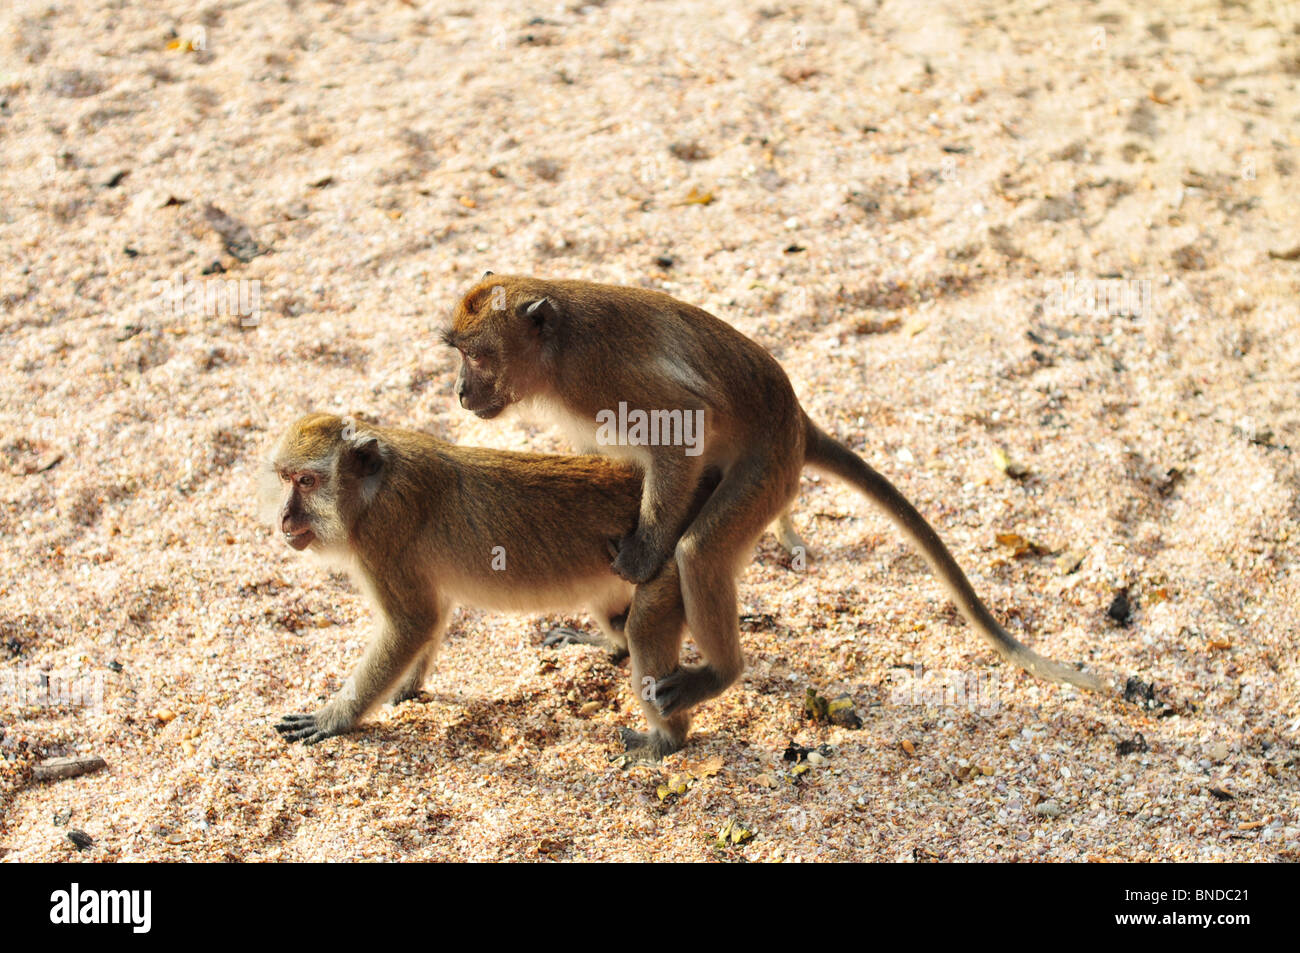 Variant Picture of monkey having sex